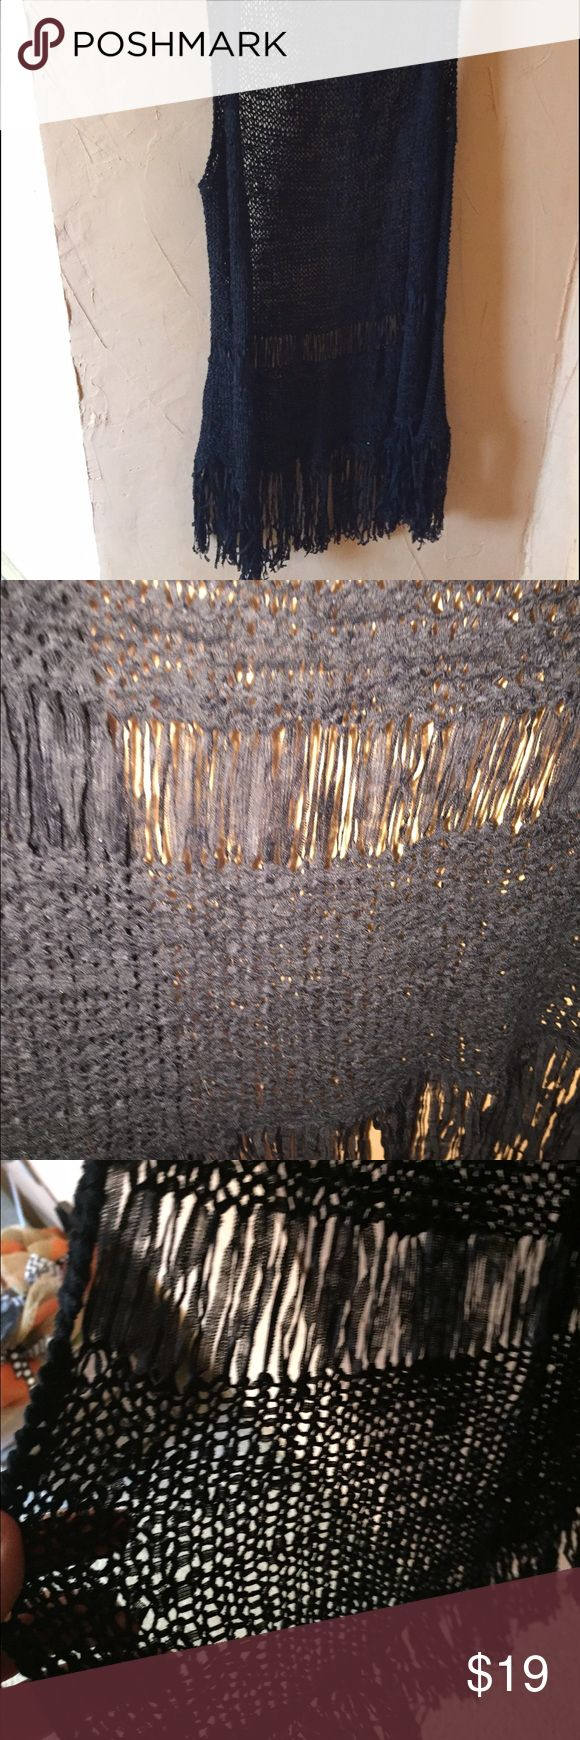 Black tunic vest Black tunic vest with fringe and lace details Maurices Other